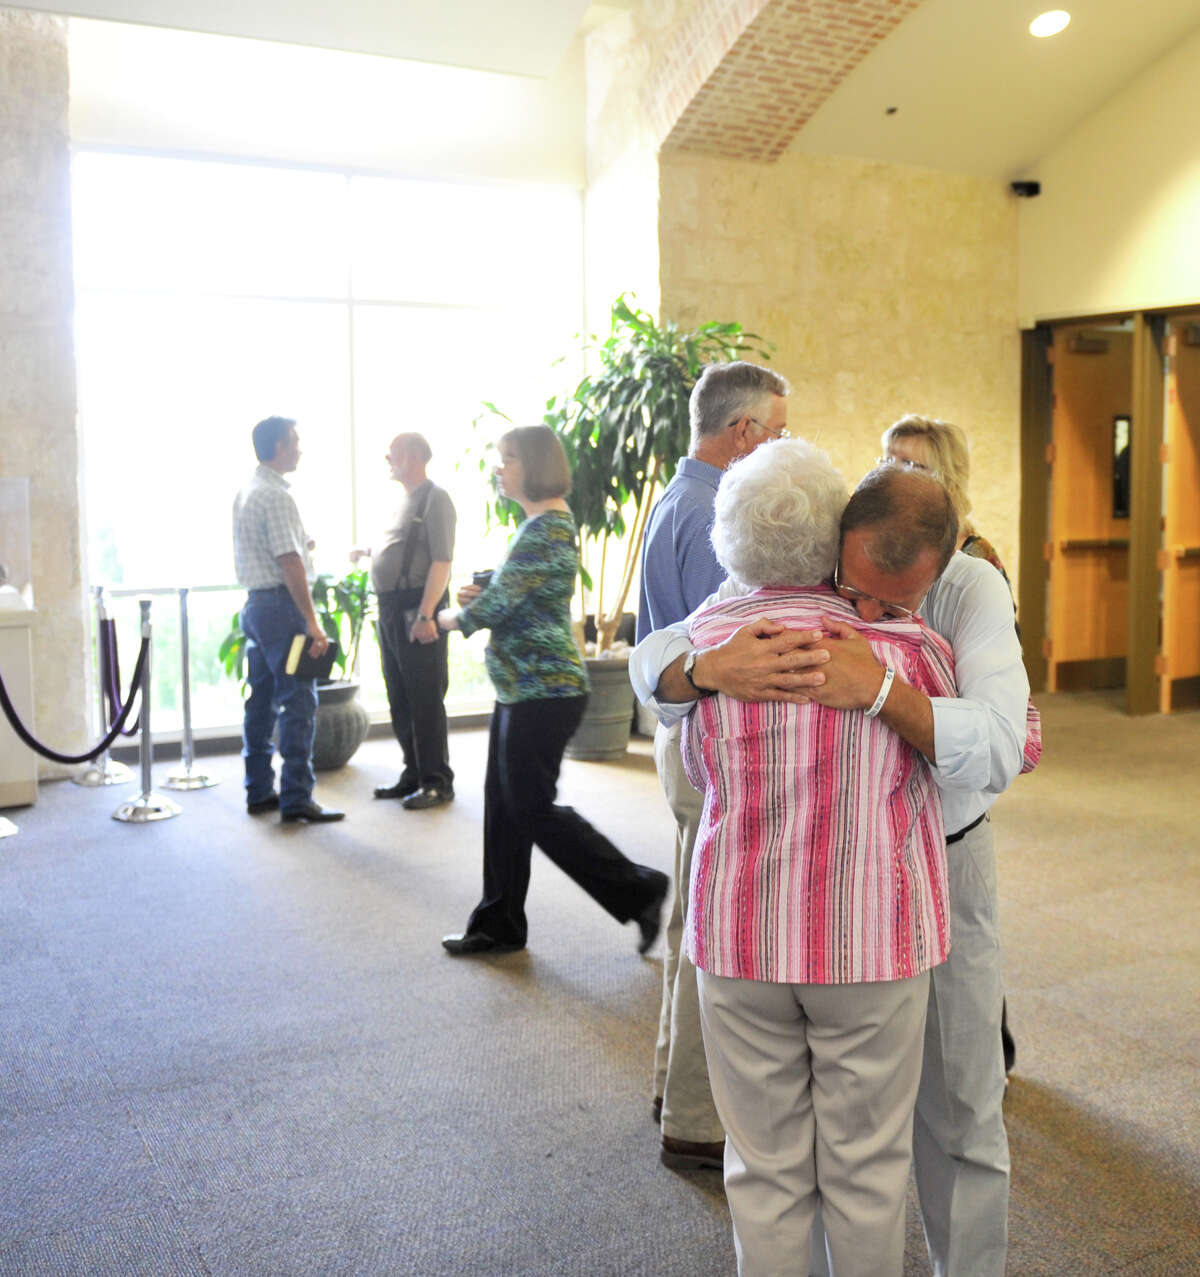 """Senior minister Randy Frazee hugs a church member following a service at Oak Hills Church. He says he and Max Lucado """"both agreed this partnership has added years to our lives."""" Both men also say that the dual-minister setup, while rare for large churches, plays to their strengths."""